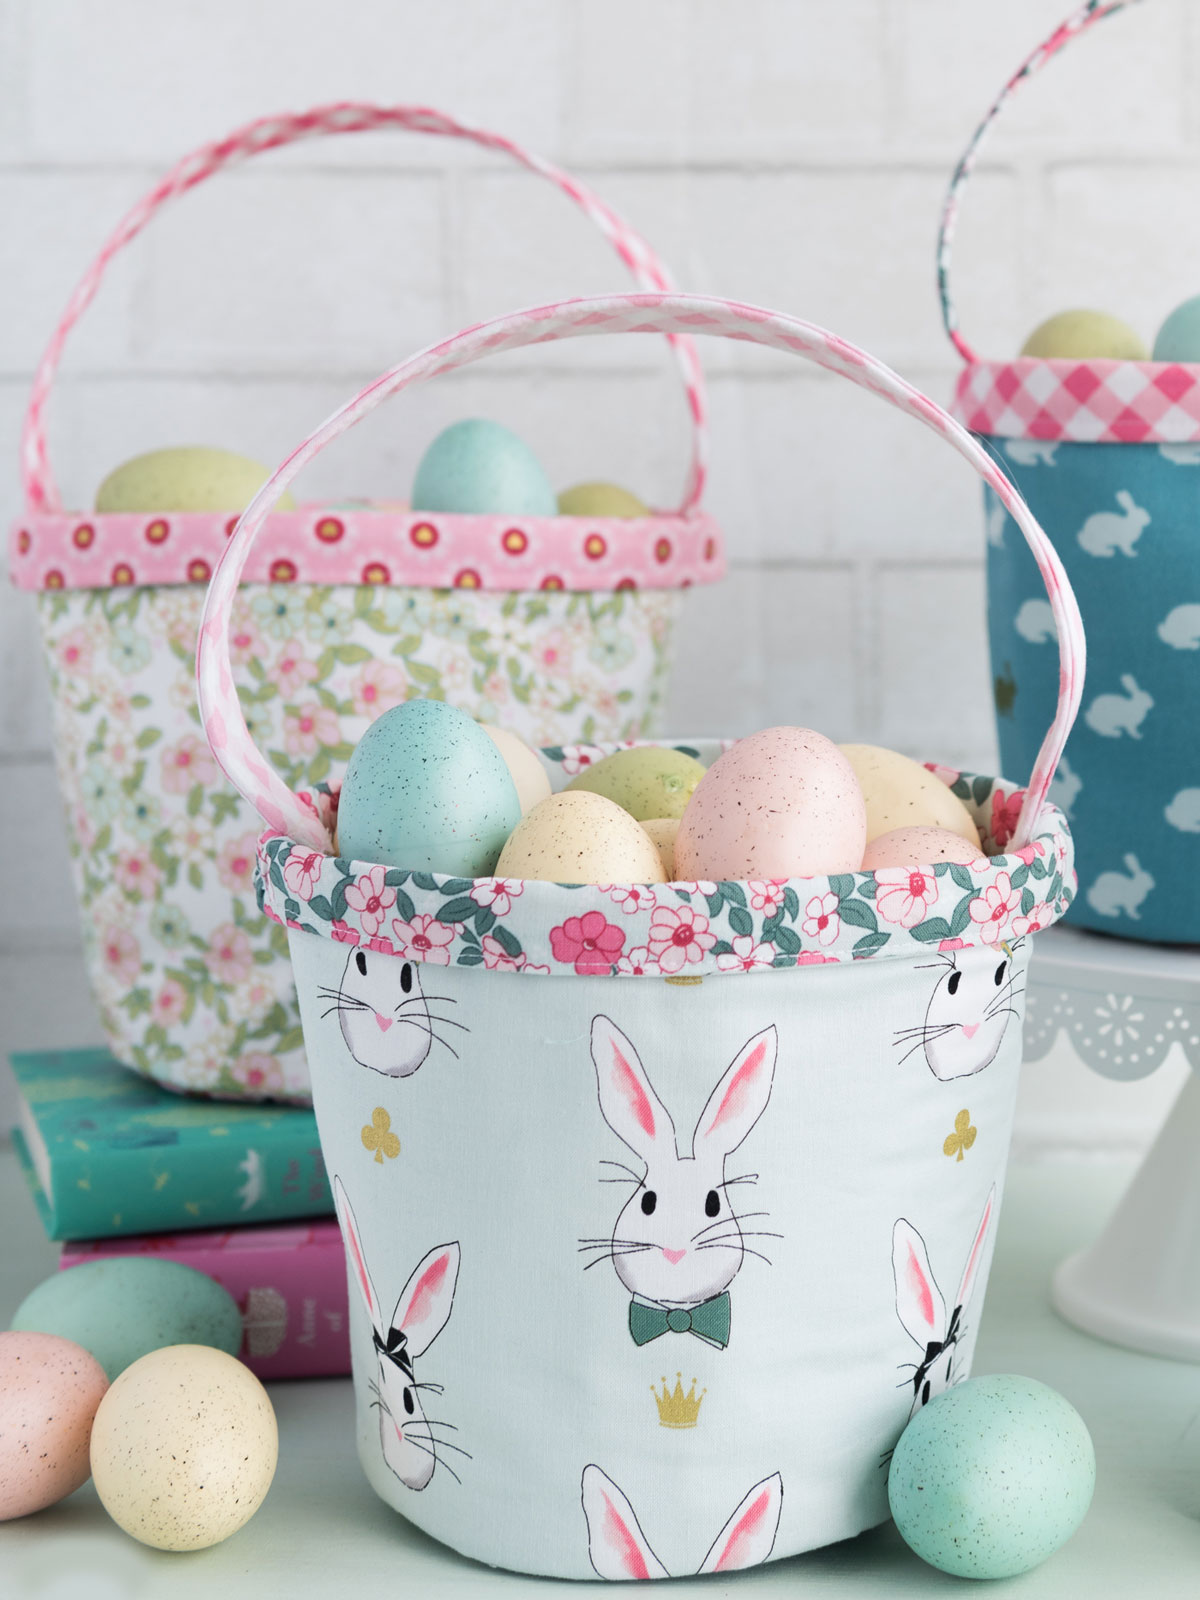 Easter sewing projects from weallsew weallsew easter basket sewing pattern by melissa mortenson of polkadotchair using wonderland two fabrics negle Choice Image